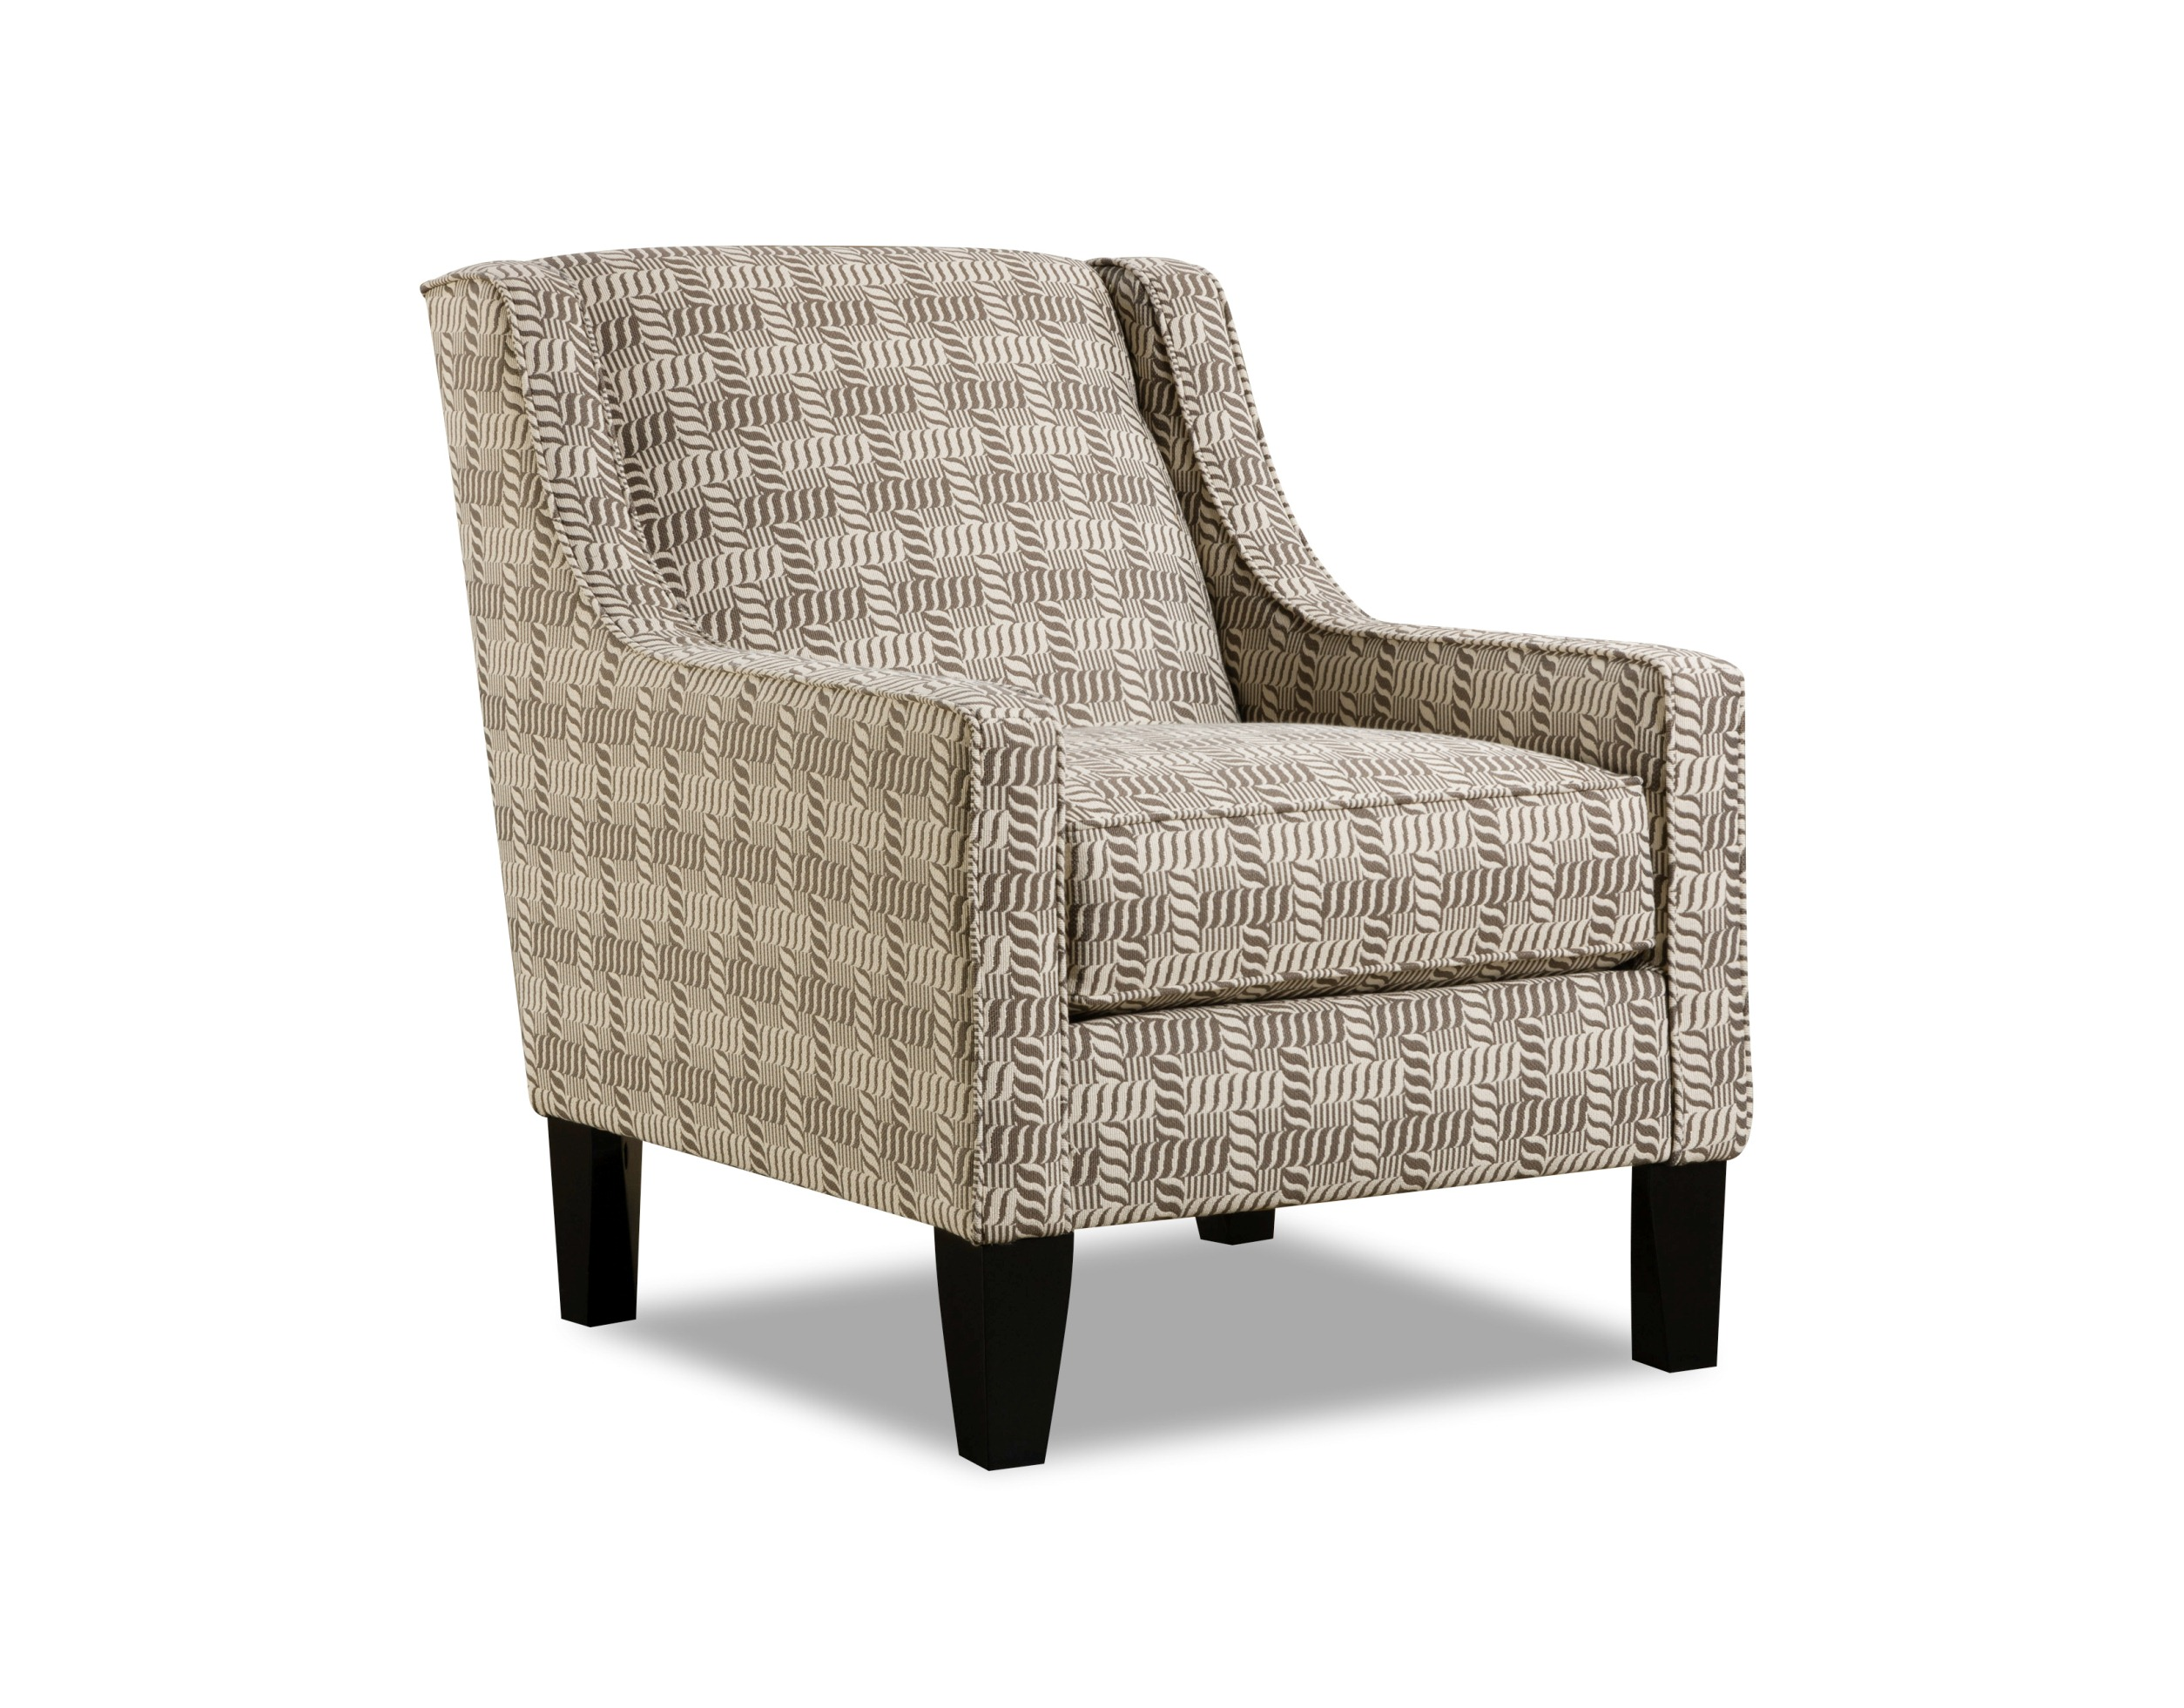 Sears Accent Chairs Simmons Halyard Seal Accent Chair